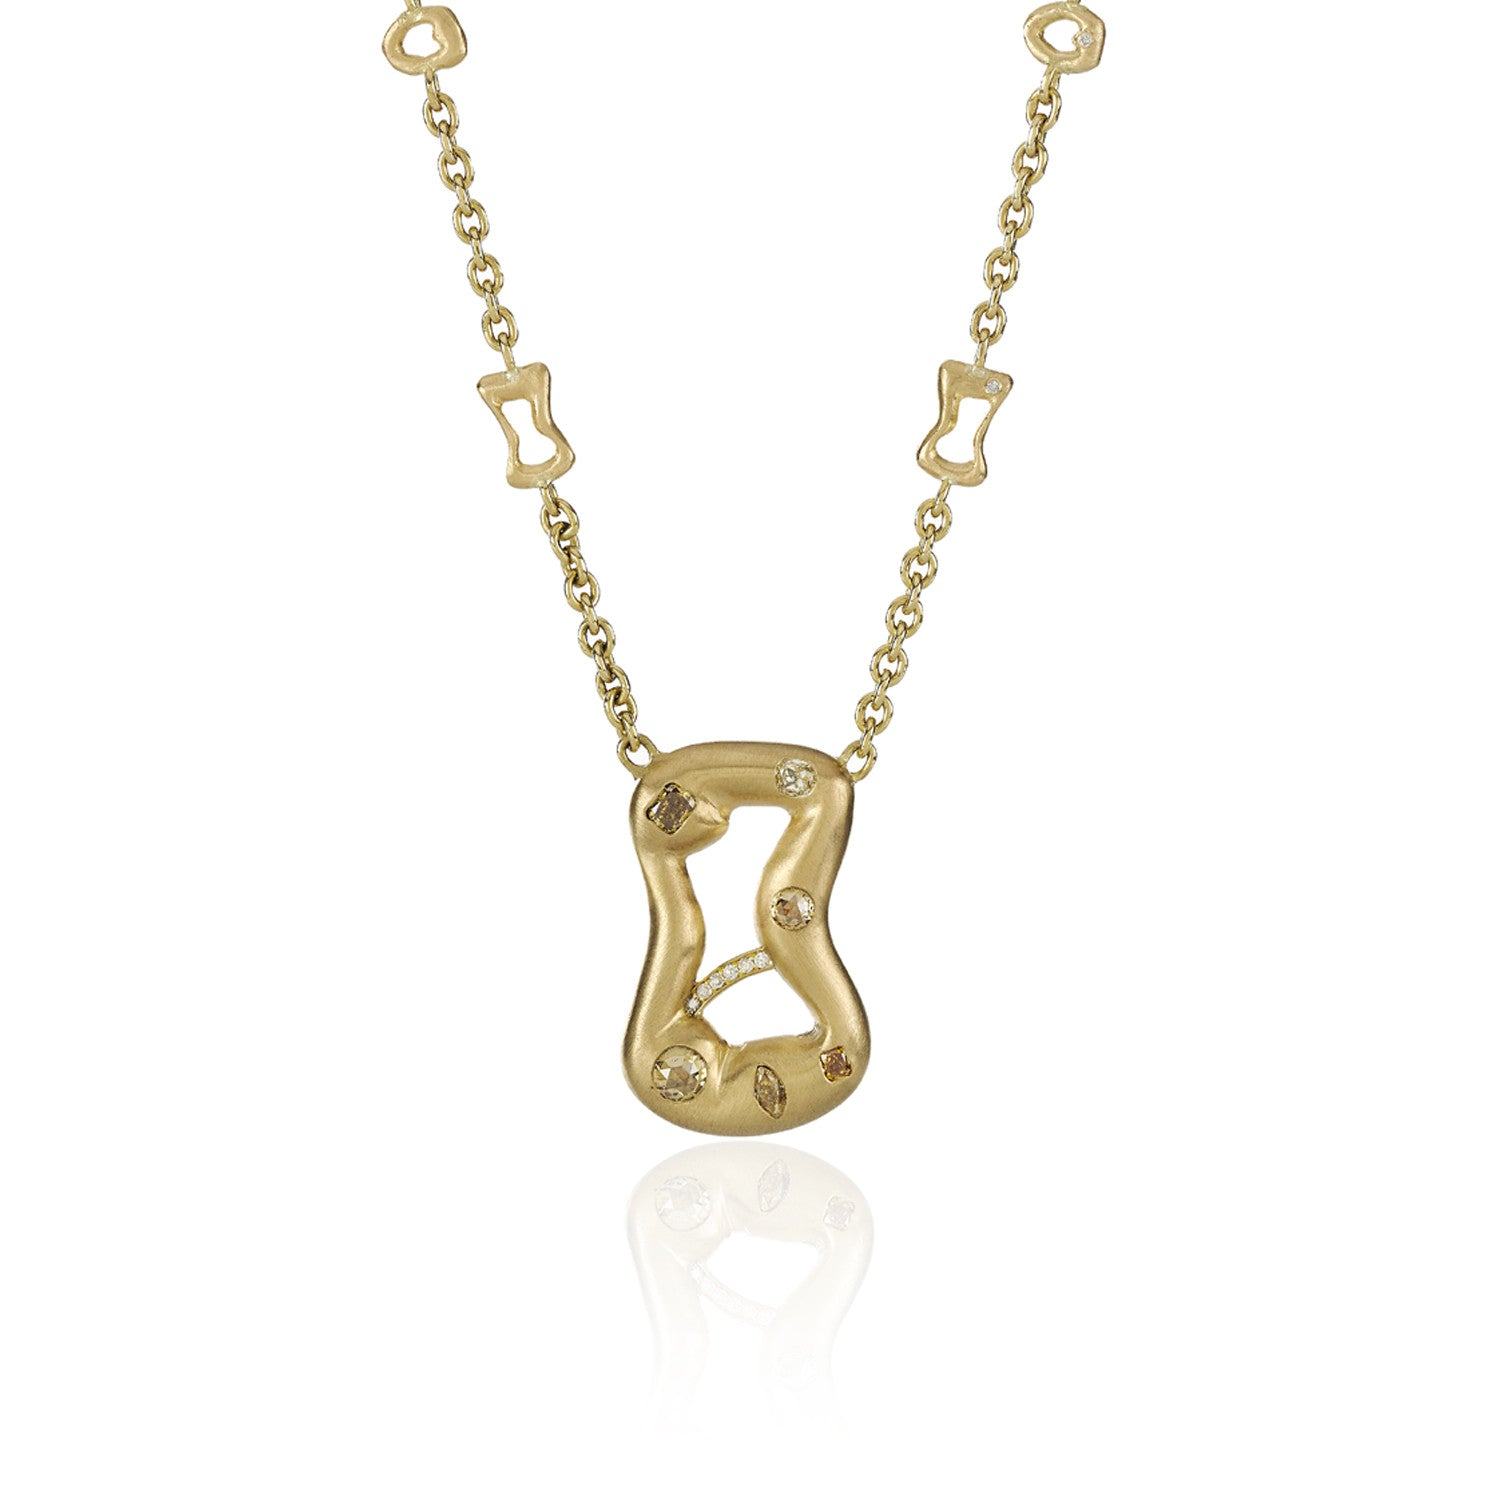 Guitare Pendant with Charms - 18k Yelow Gold